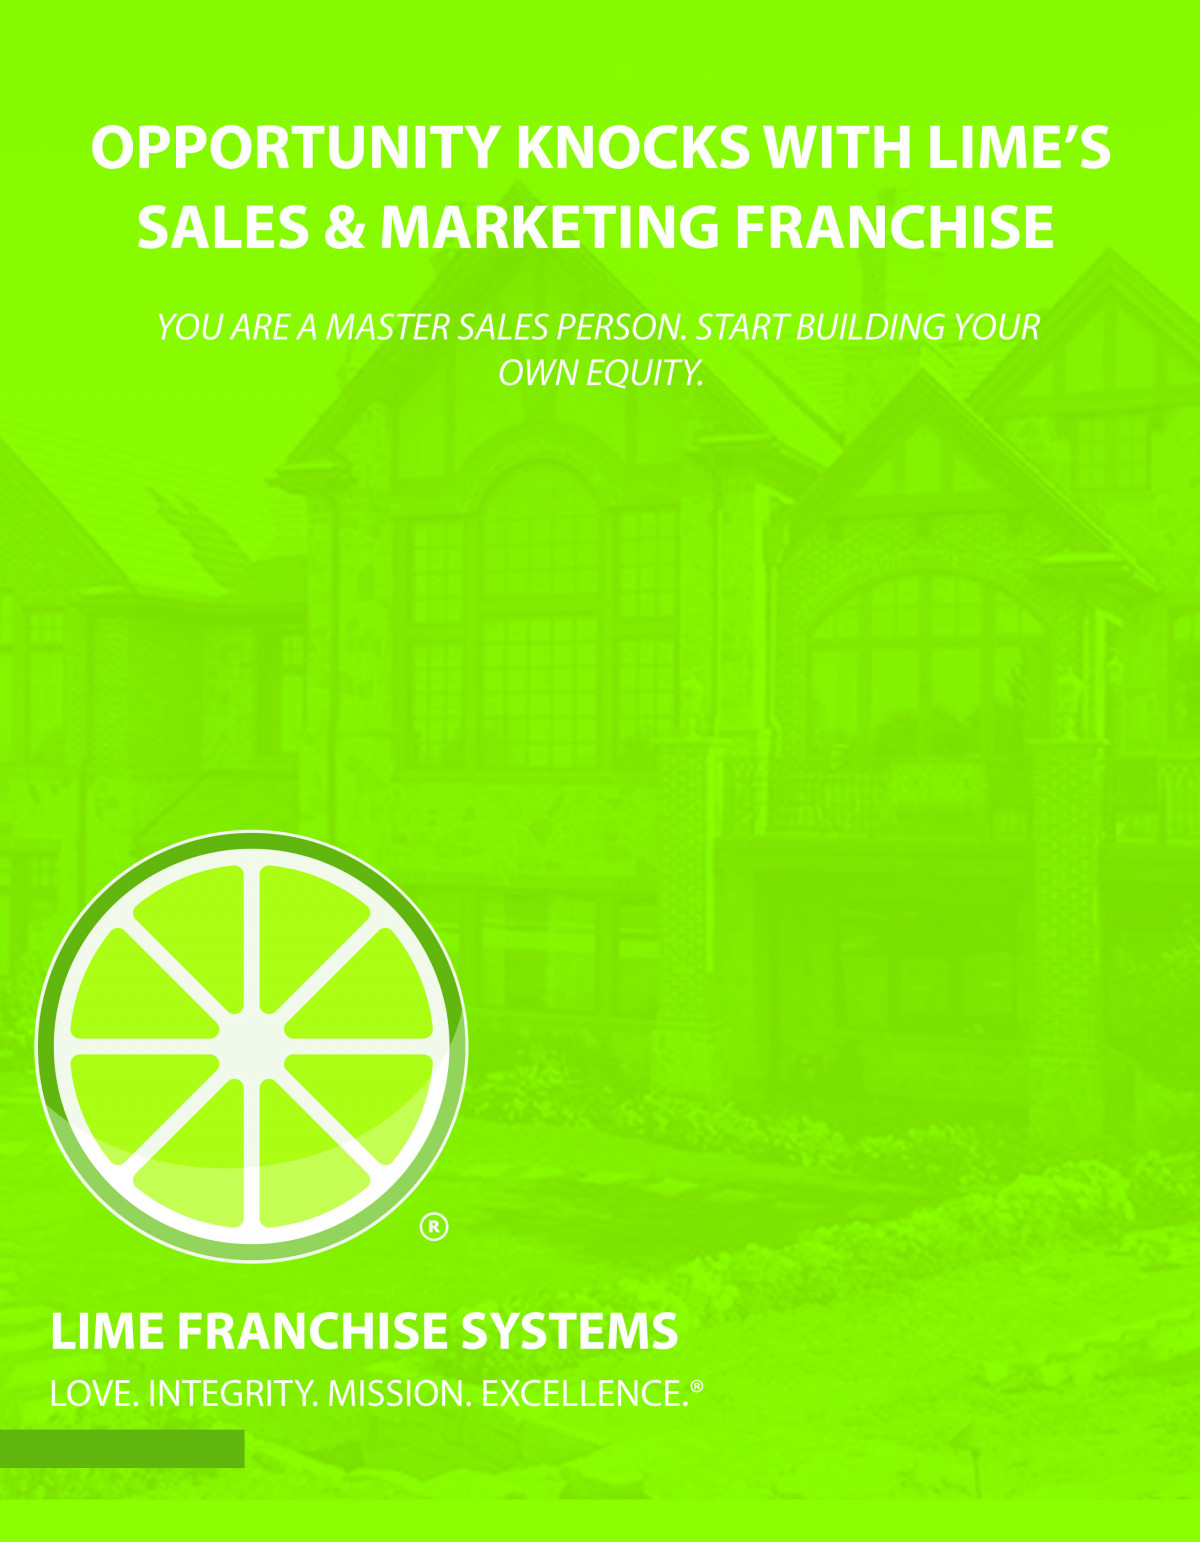 Opportunity Knocks With LIME's Sales & Marketing Franchise 2 of 3